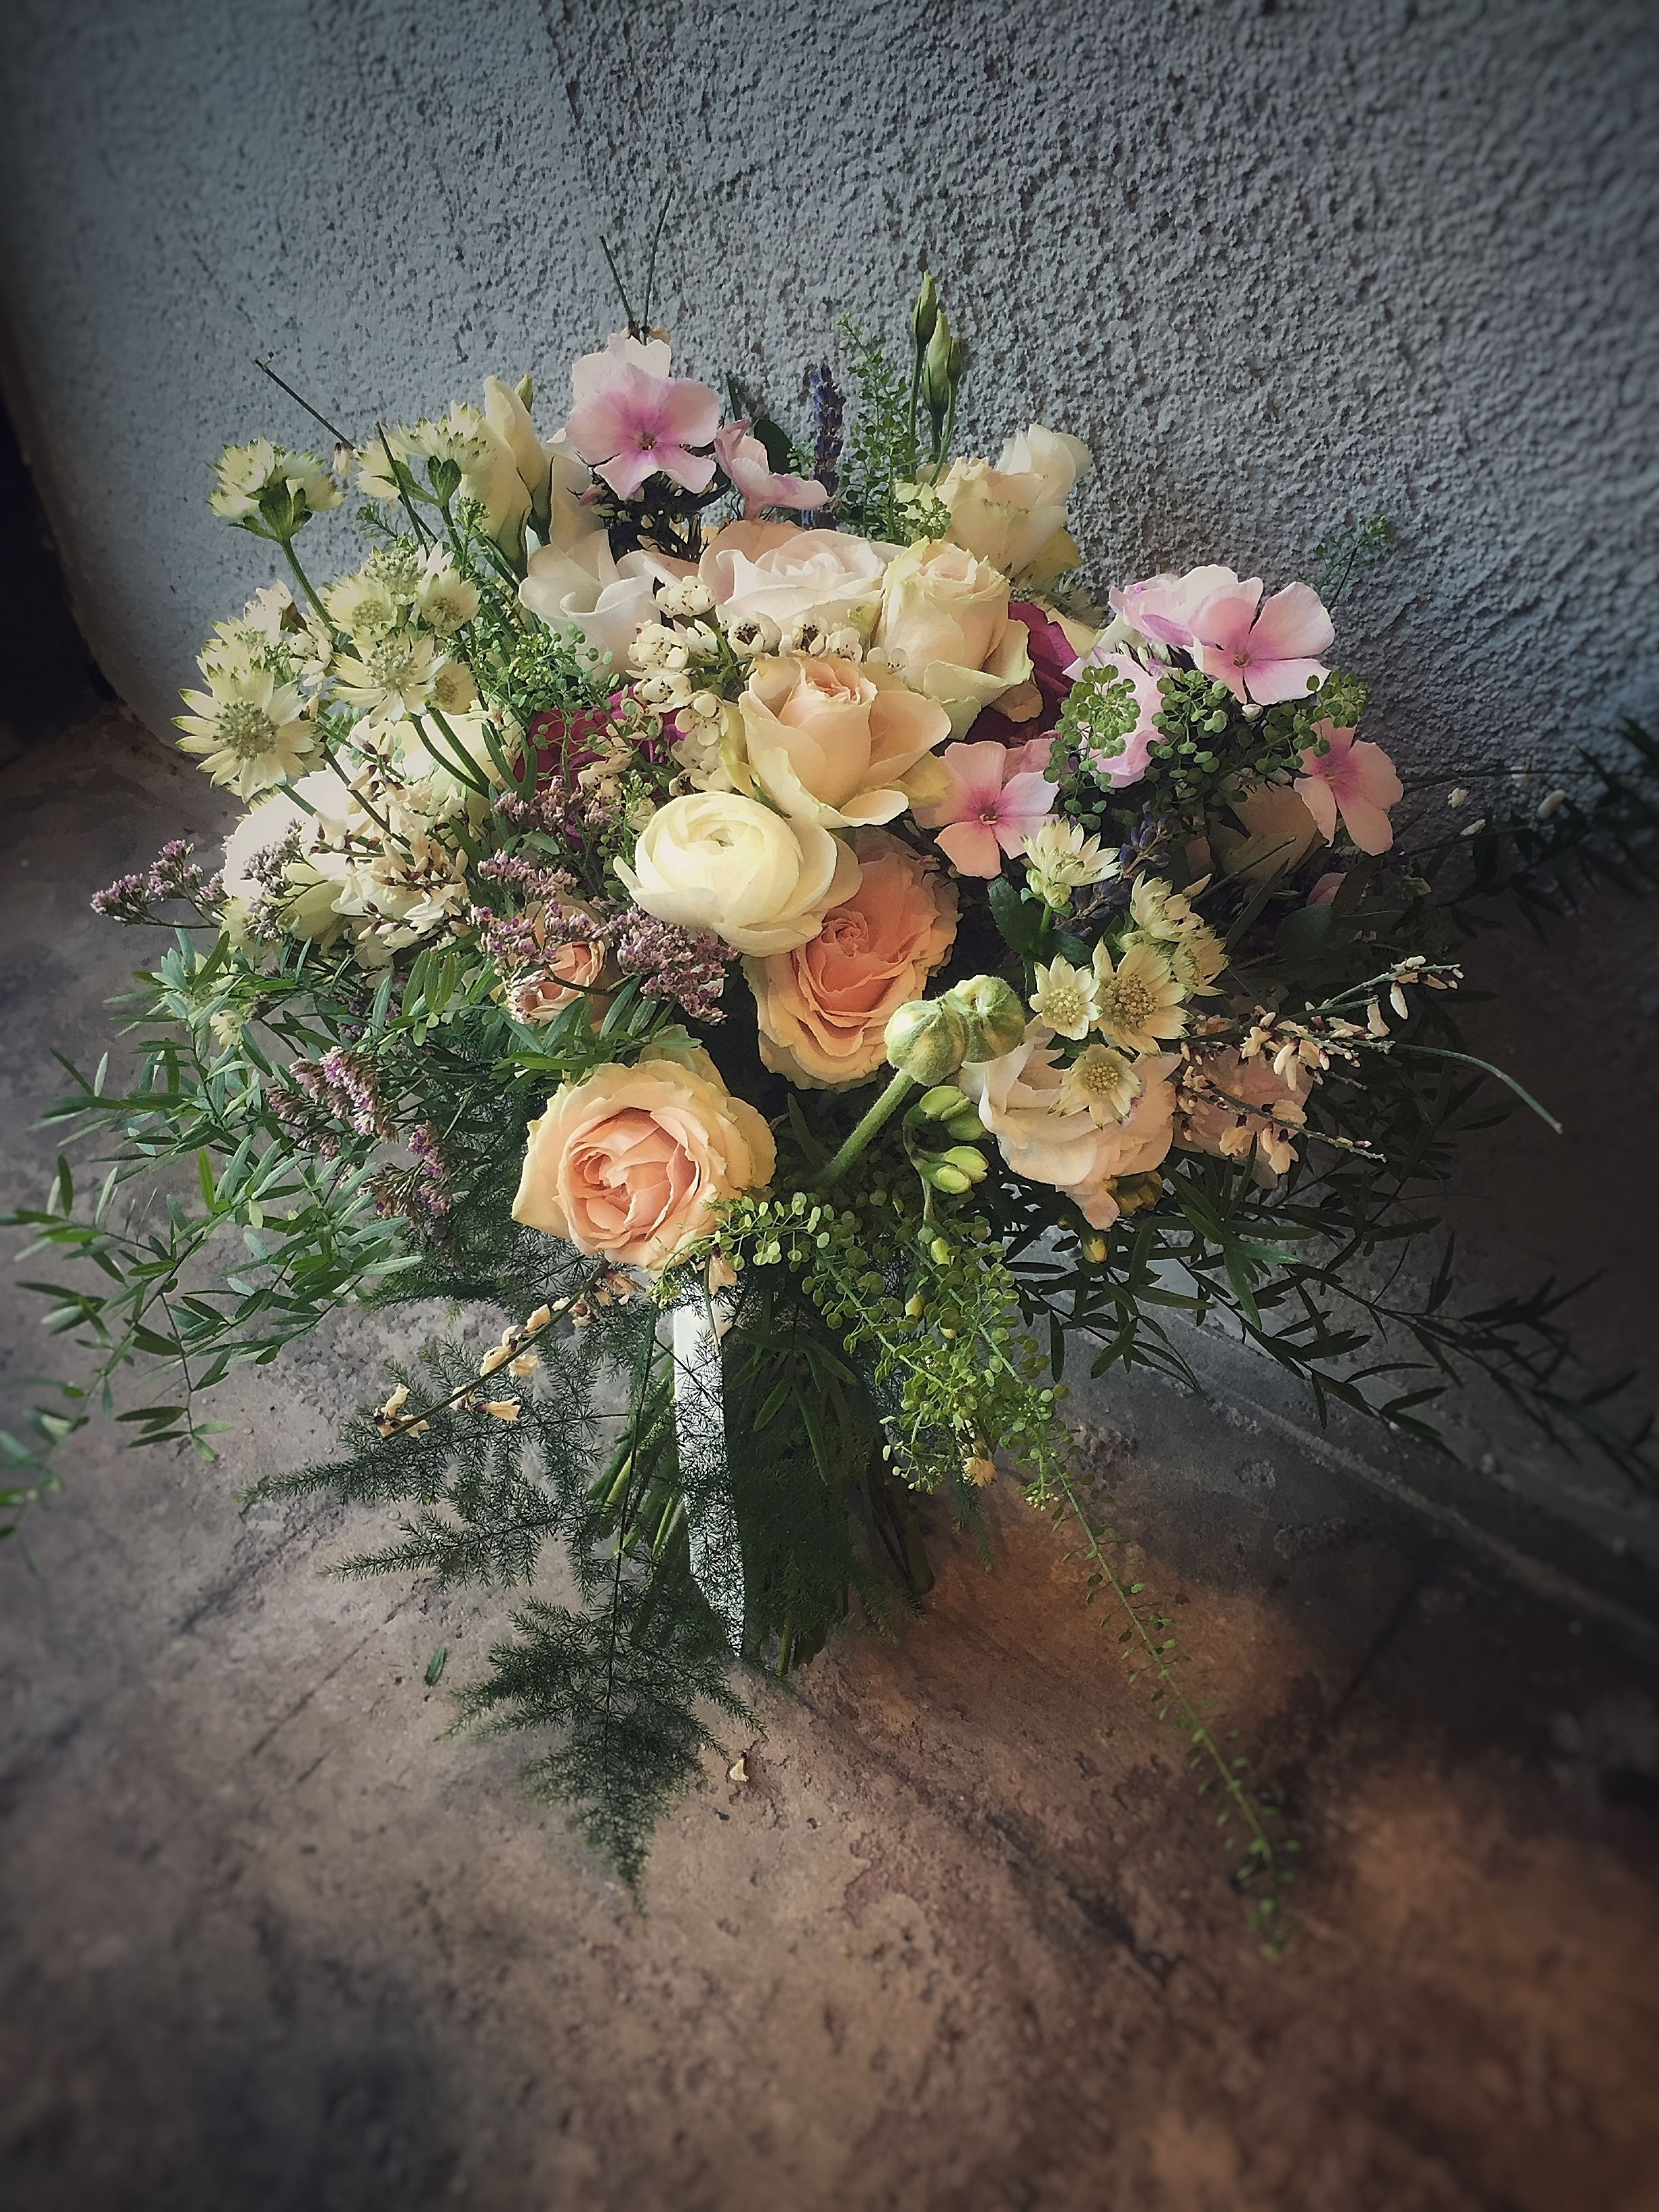 Flowers by shirley garden rose bouquets - Peach Pink Spring Bouquet With Jana Spray Roses Phlox Broom Ranunculus